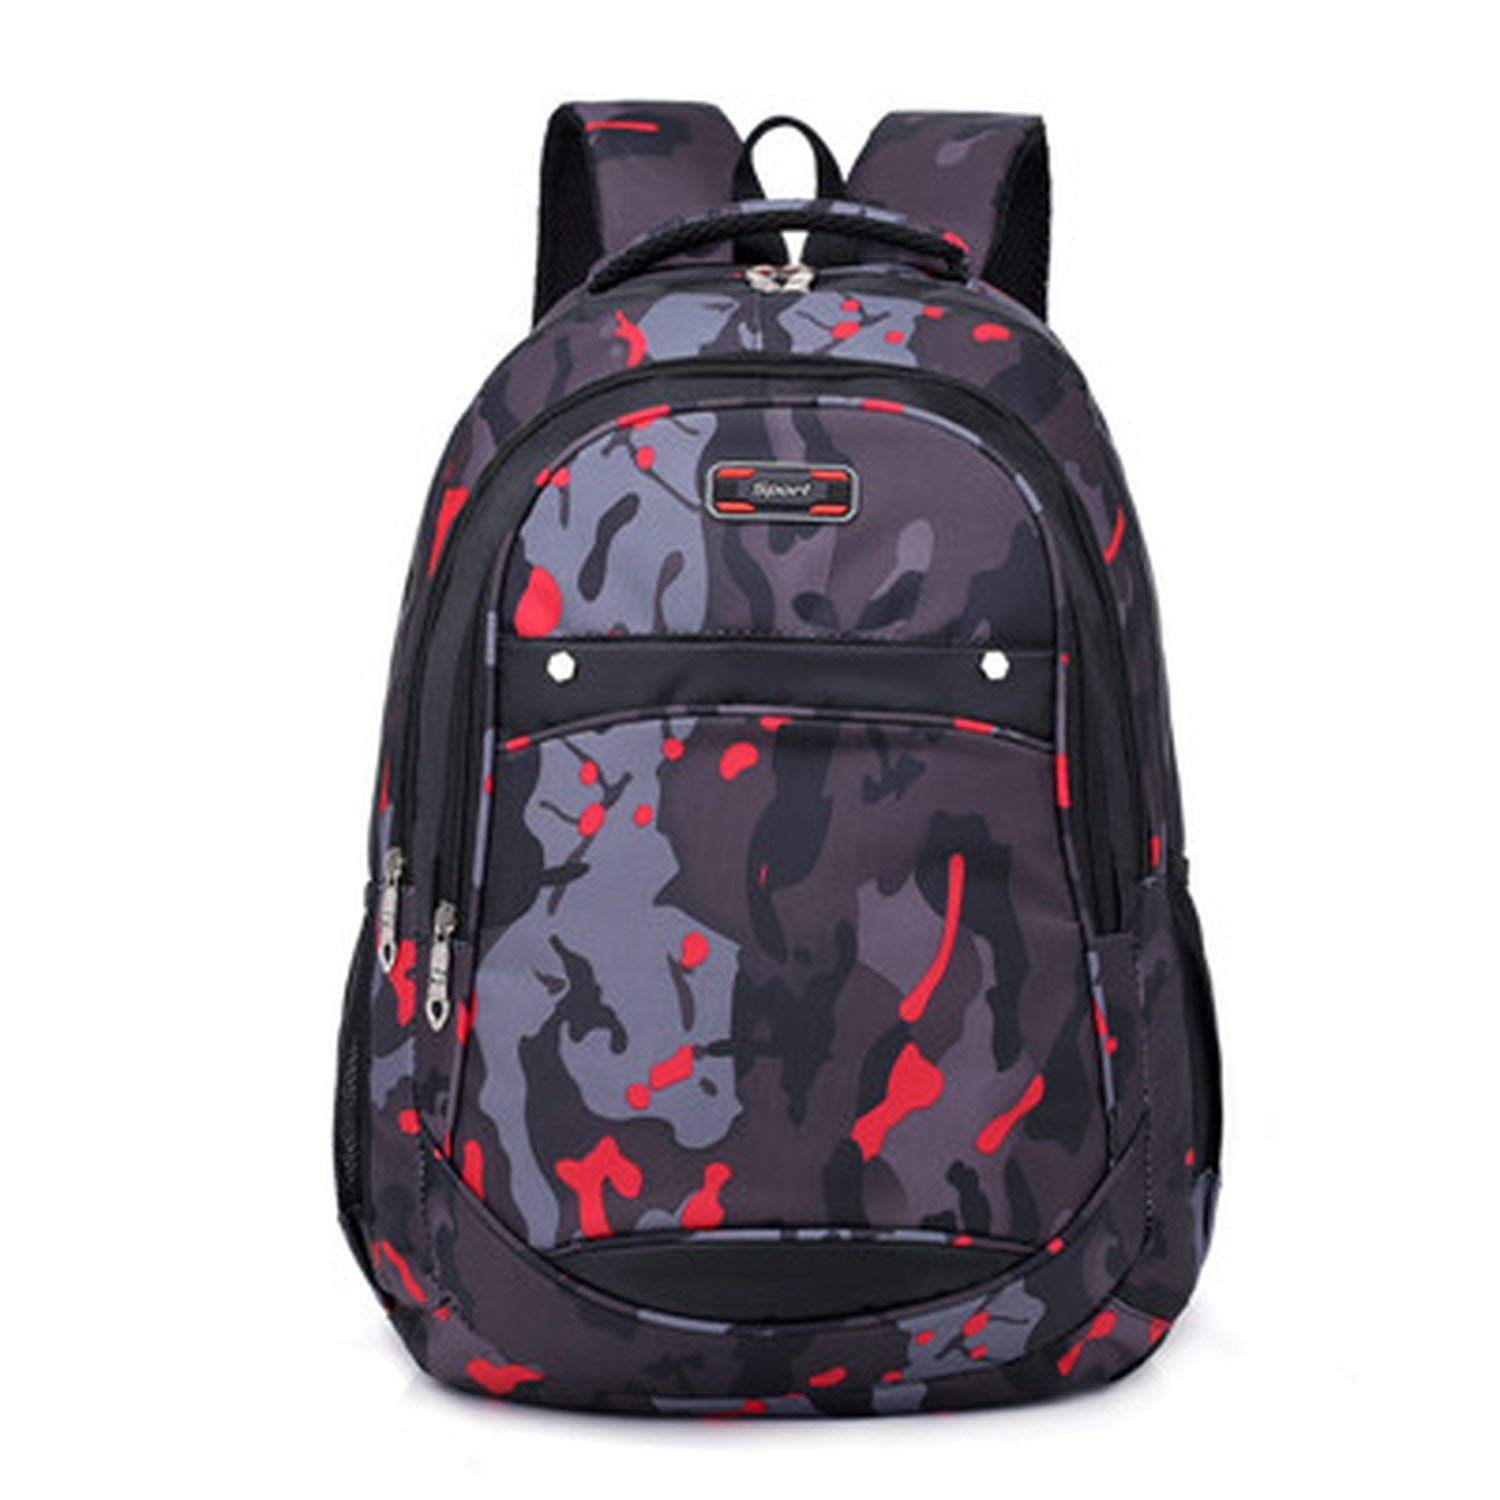 Engineeringed Camo Backpack Waterproof Nylon Women Men Backpack Laptop Backpack